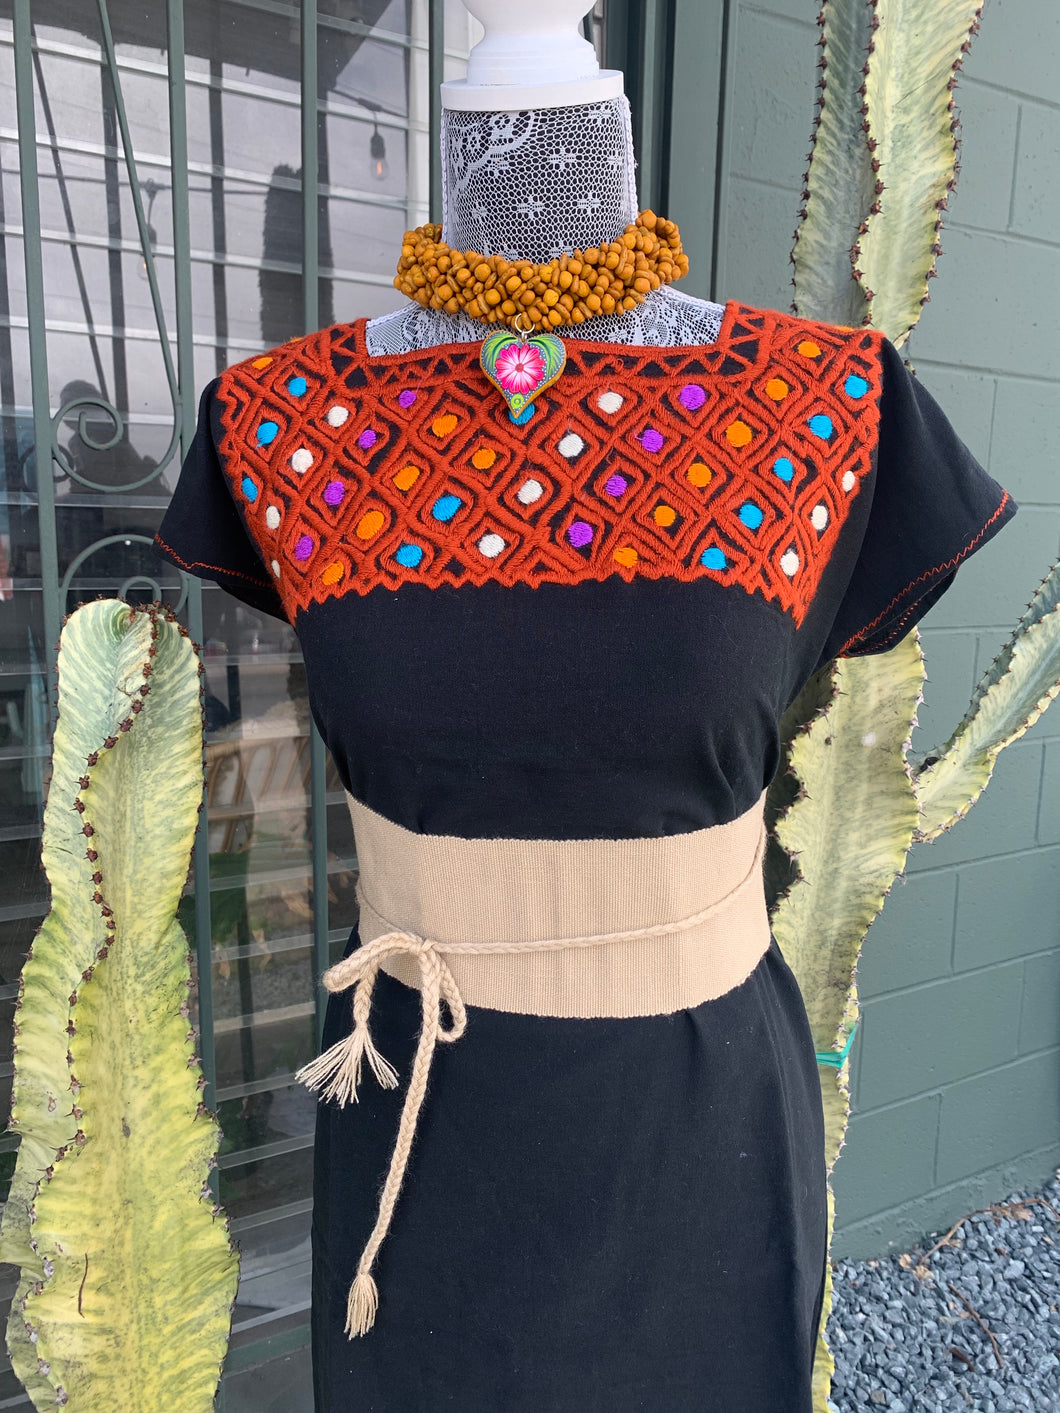 Black and golden brown blouse from Chiapas